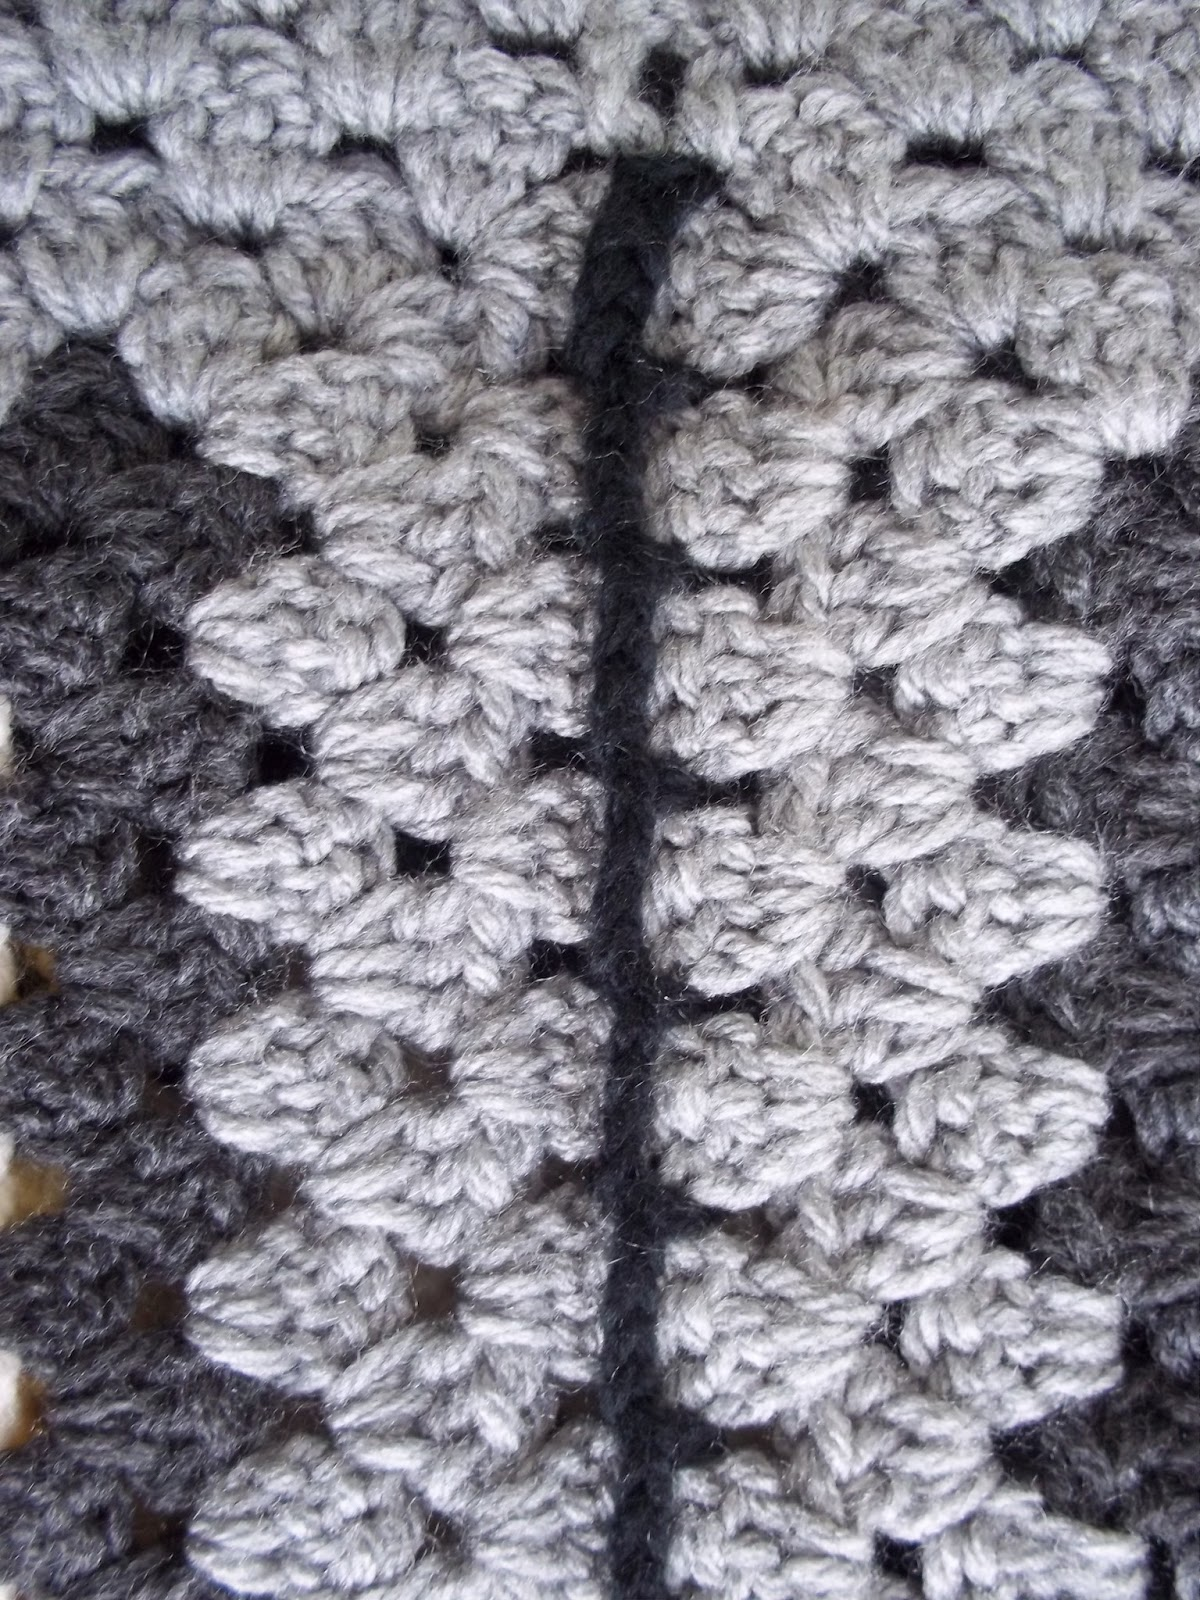 Squares crocheted together on wrong side with black yarn